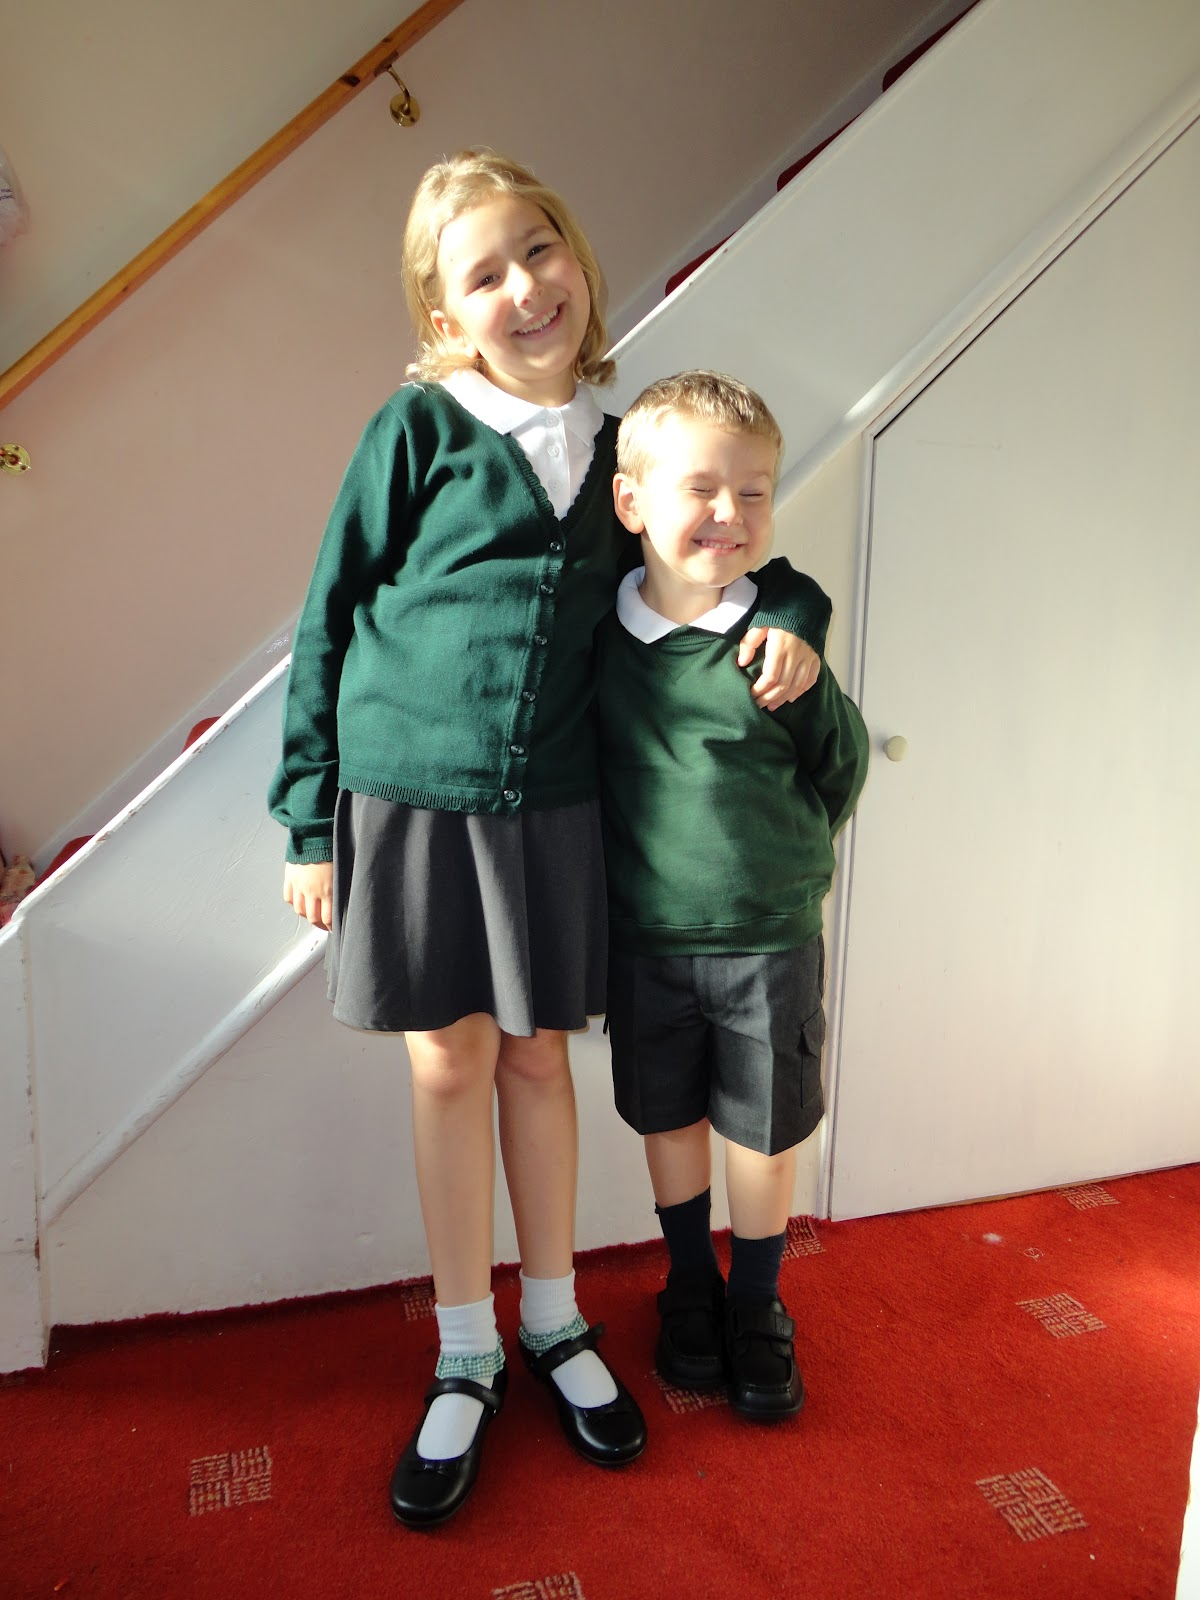 Top Ender and Dan Jon Jr, off to School where I hope they will play as much as they want!